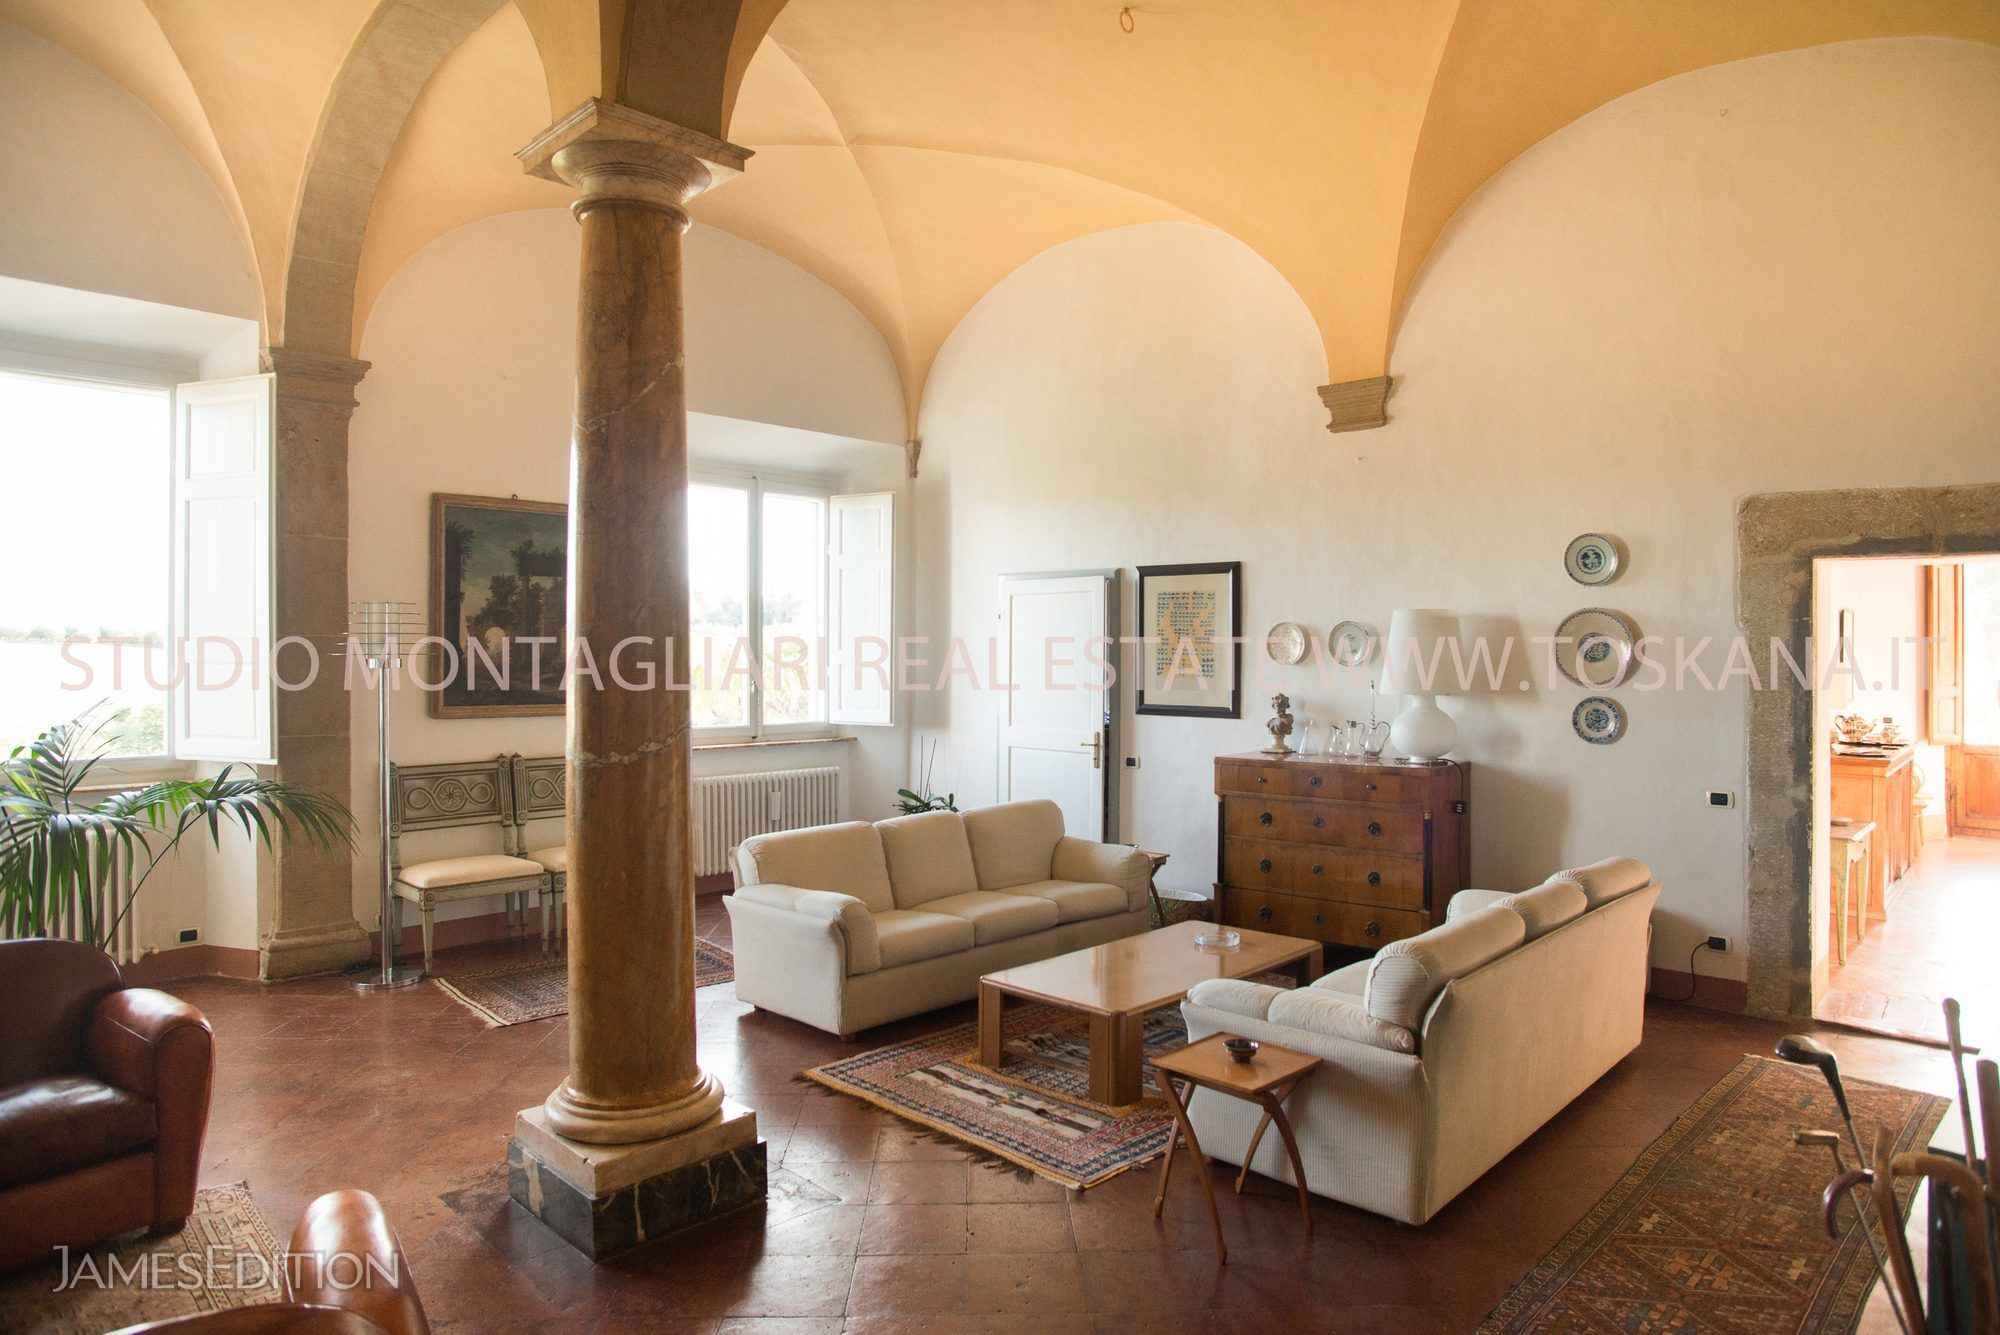 Apartment in Colle di Val d'Elsa, Tuscany, Italy 1 - 10869032